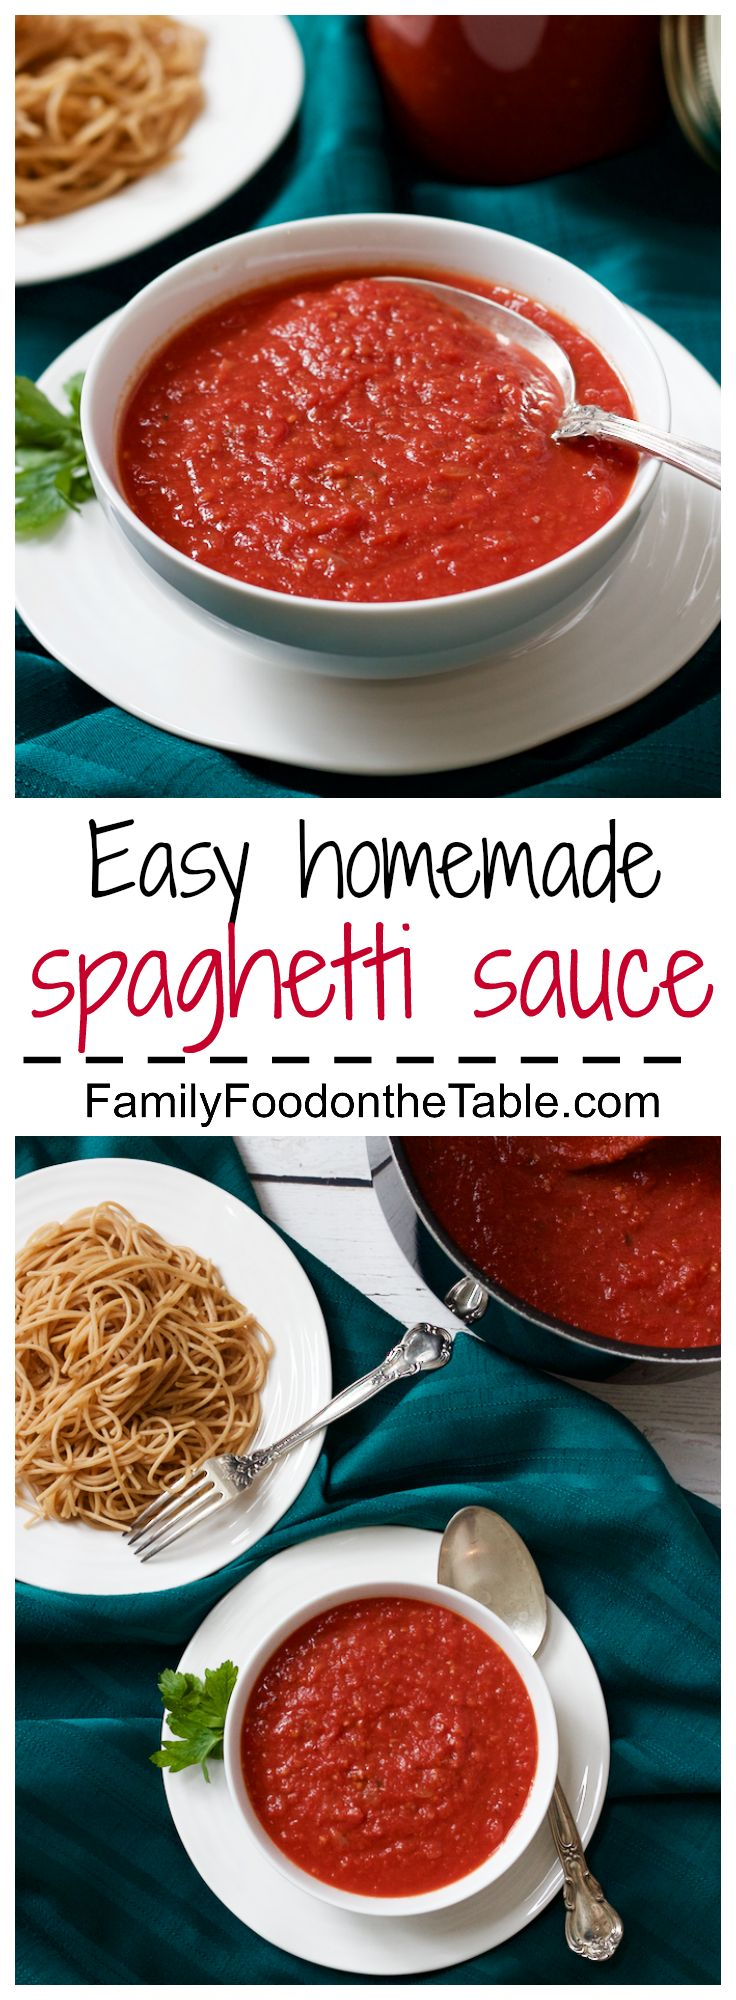 Easy homemade spaghetti sauce - just 10 minutes to prep, ready in 30! | FamilyFoodontheTable.com